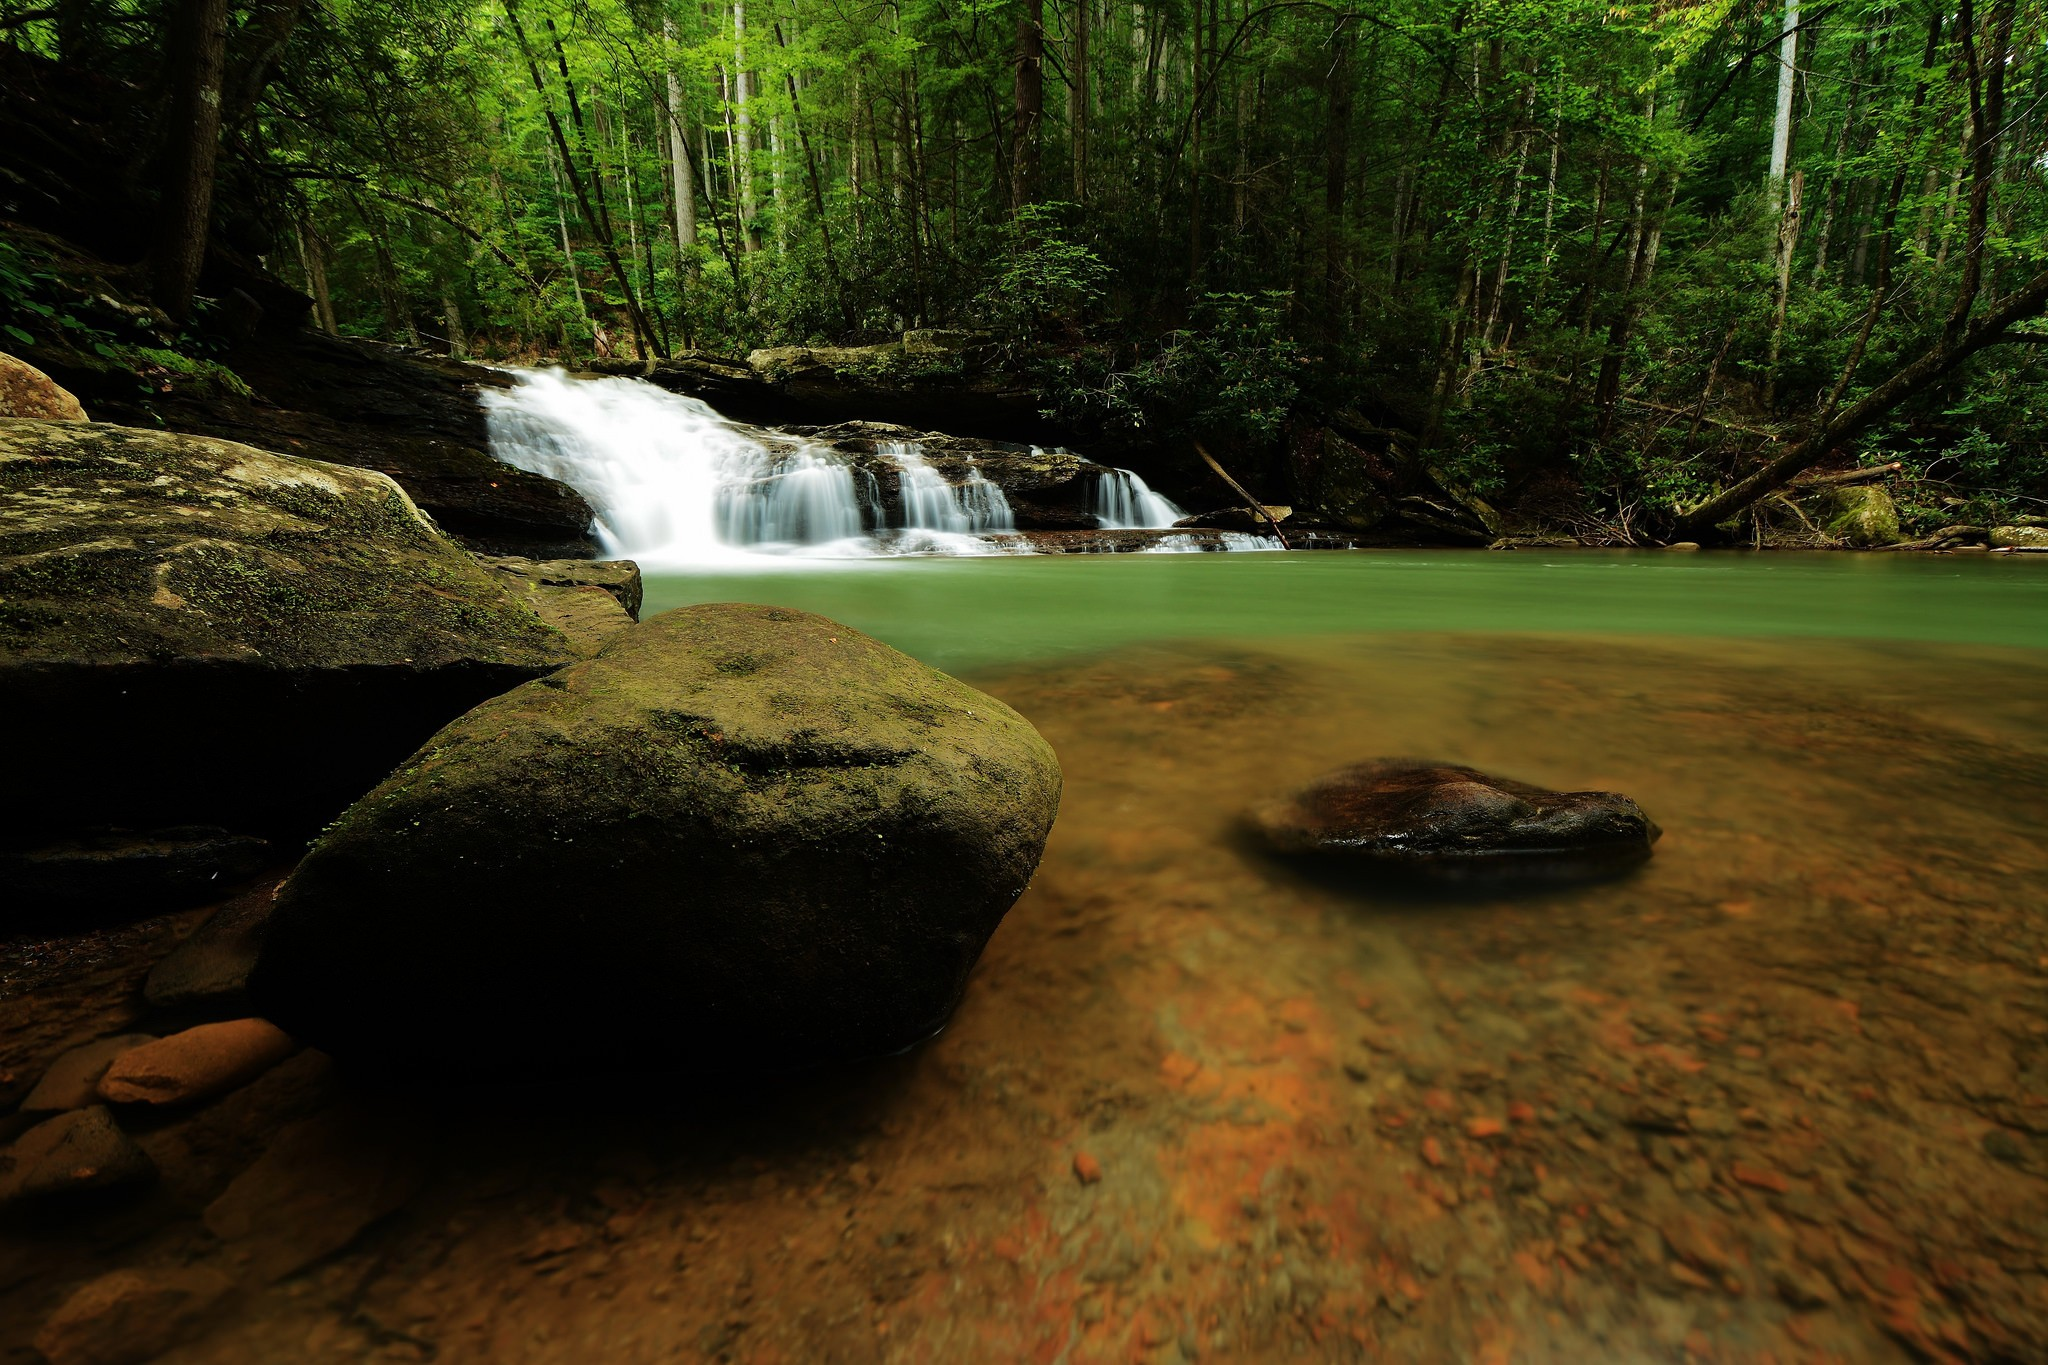 General 2048x1365 waterfall river forest rocks nature